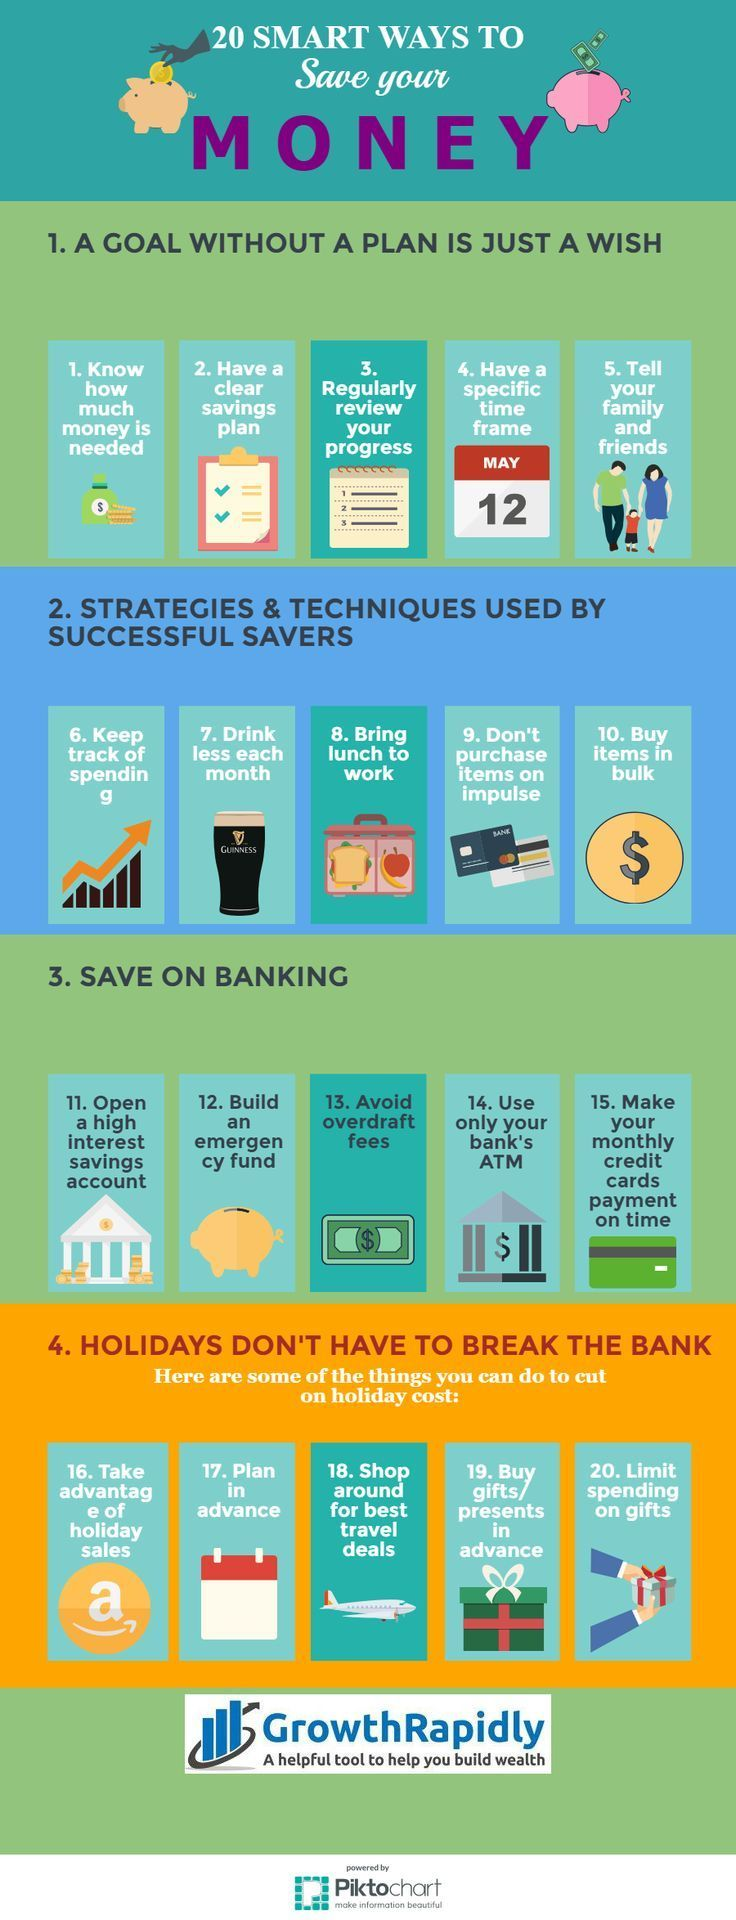 Have you ever wondered how to be a successful safer? read on to find ways to save your money. growthrapidly.com